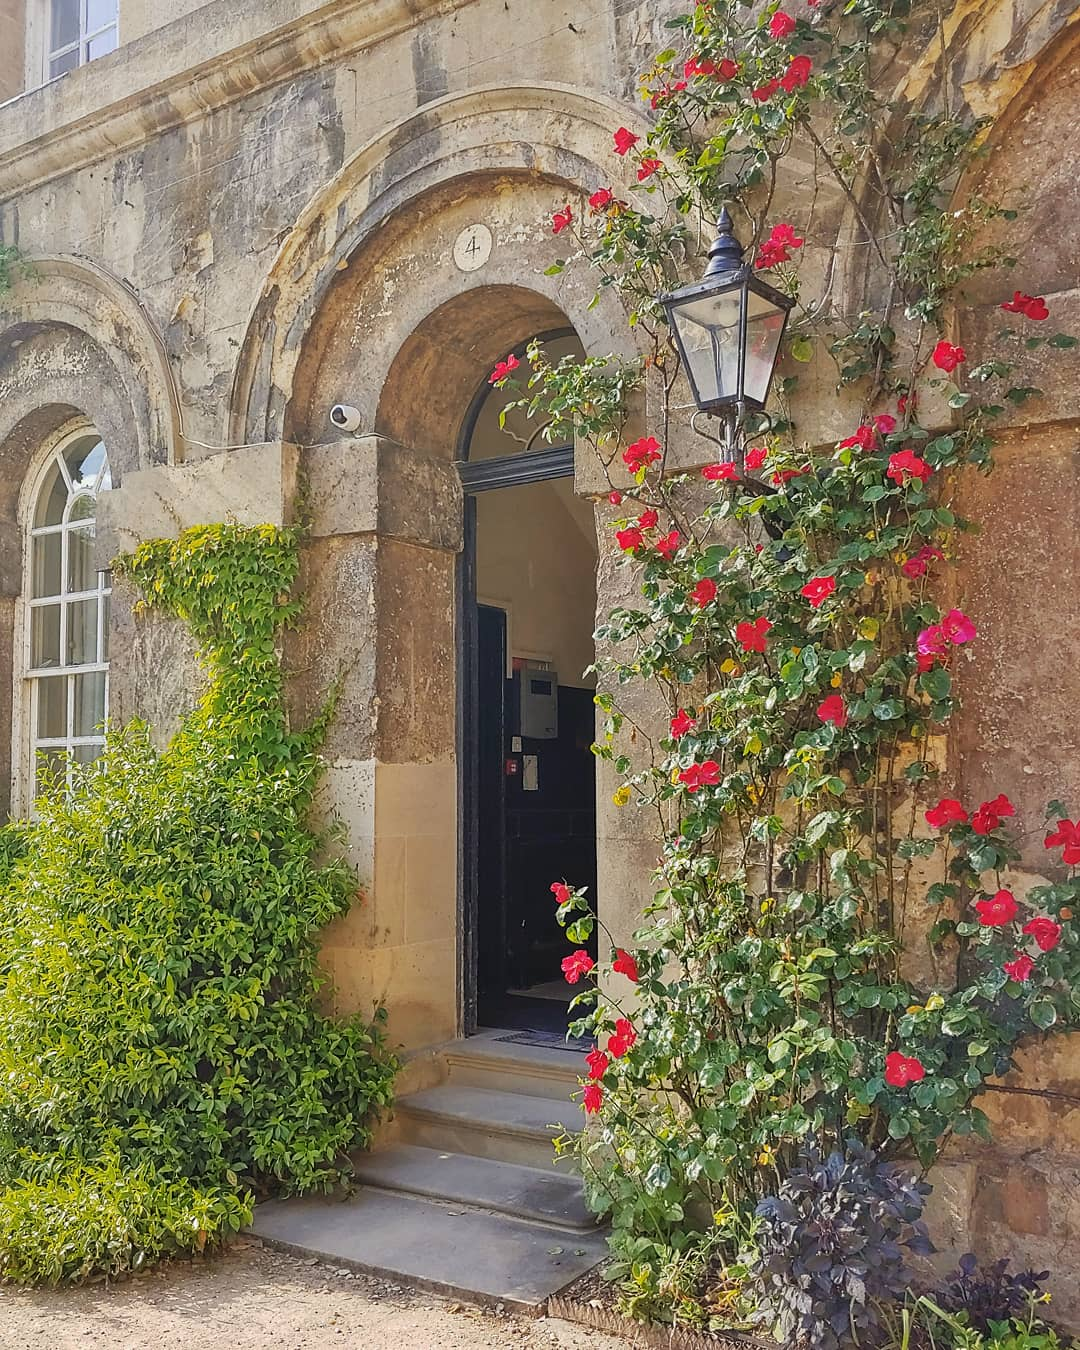 Stone doorway surrounded by red roses, at Worcester College Oxford.